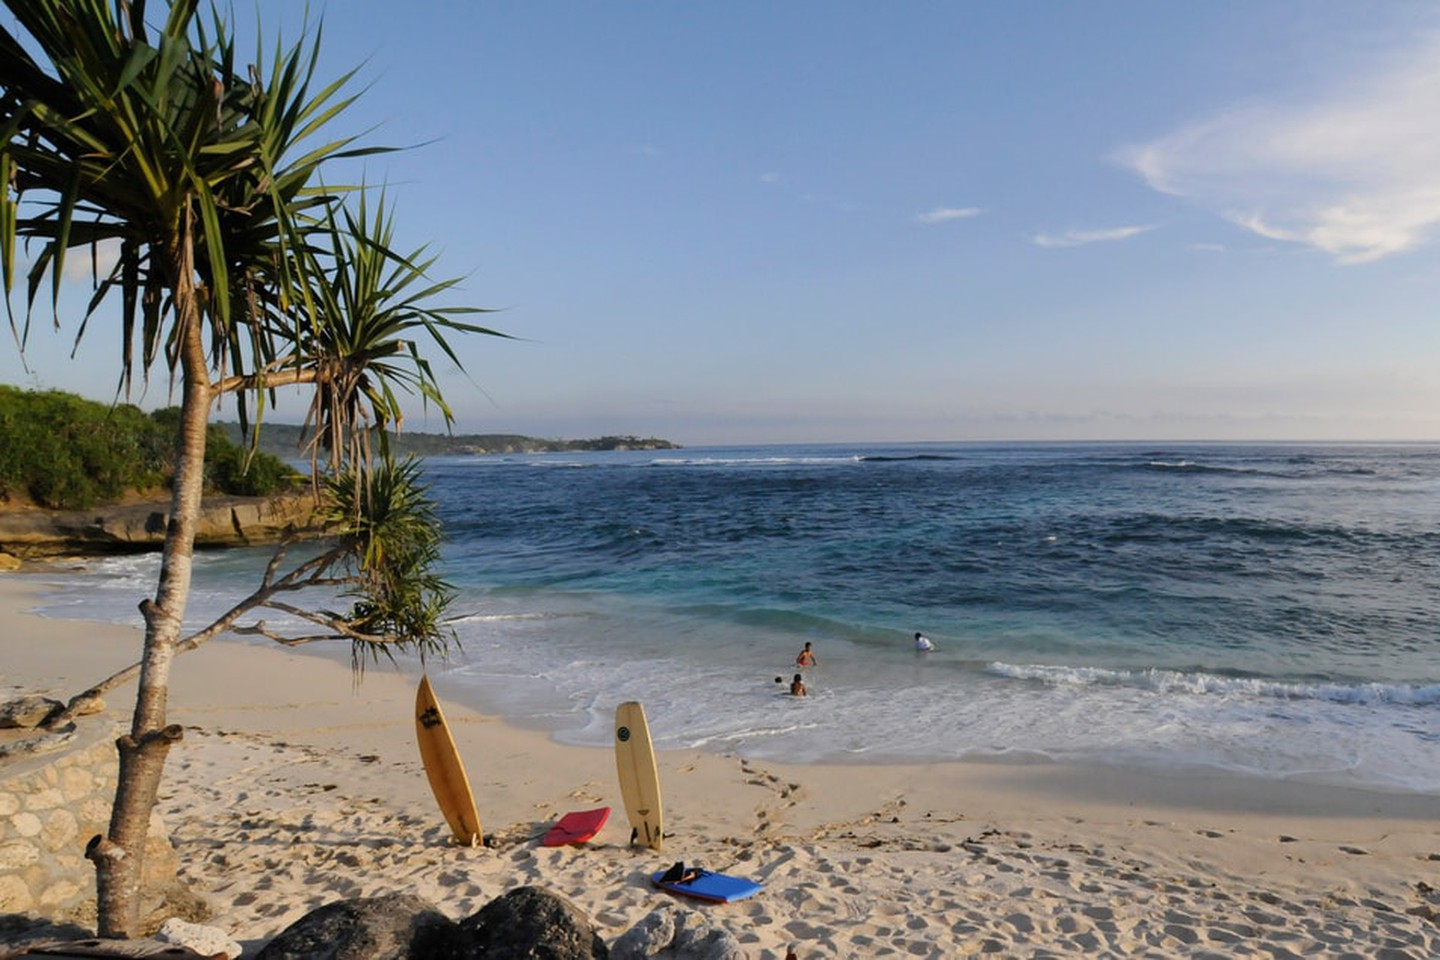 A beach in Nusa Lembongan